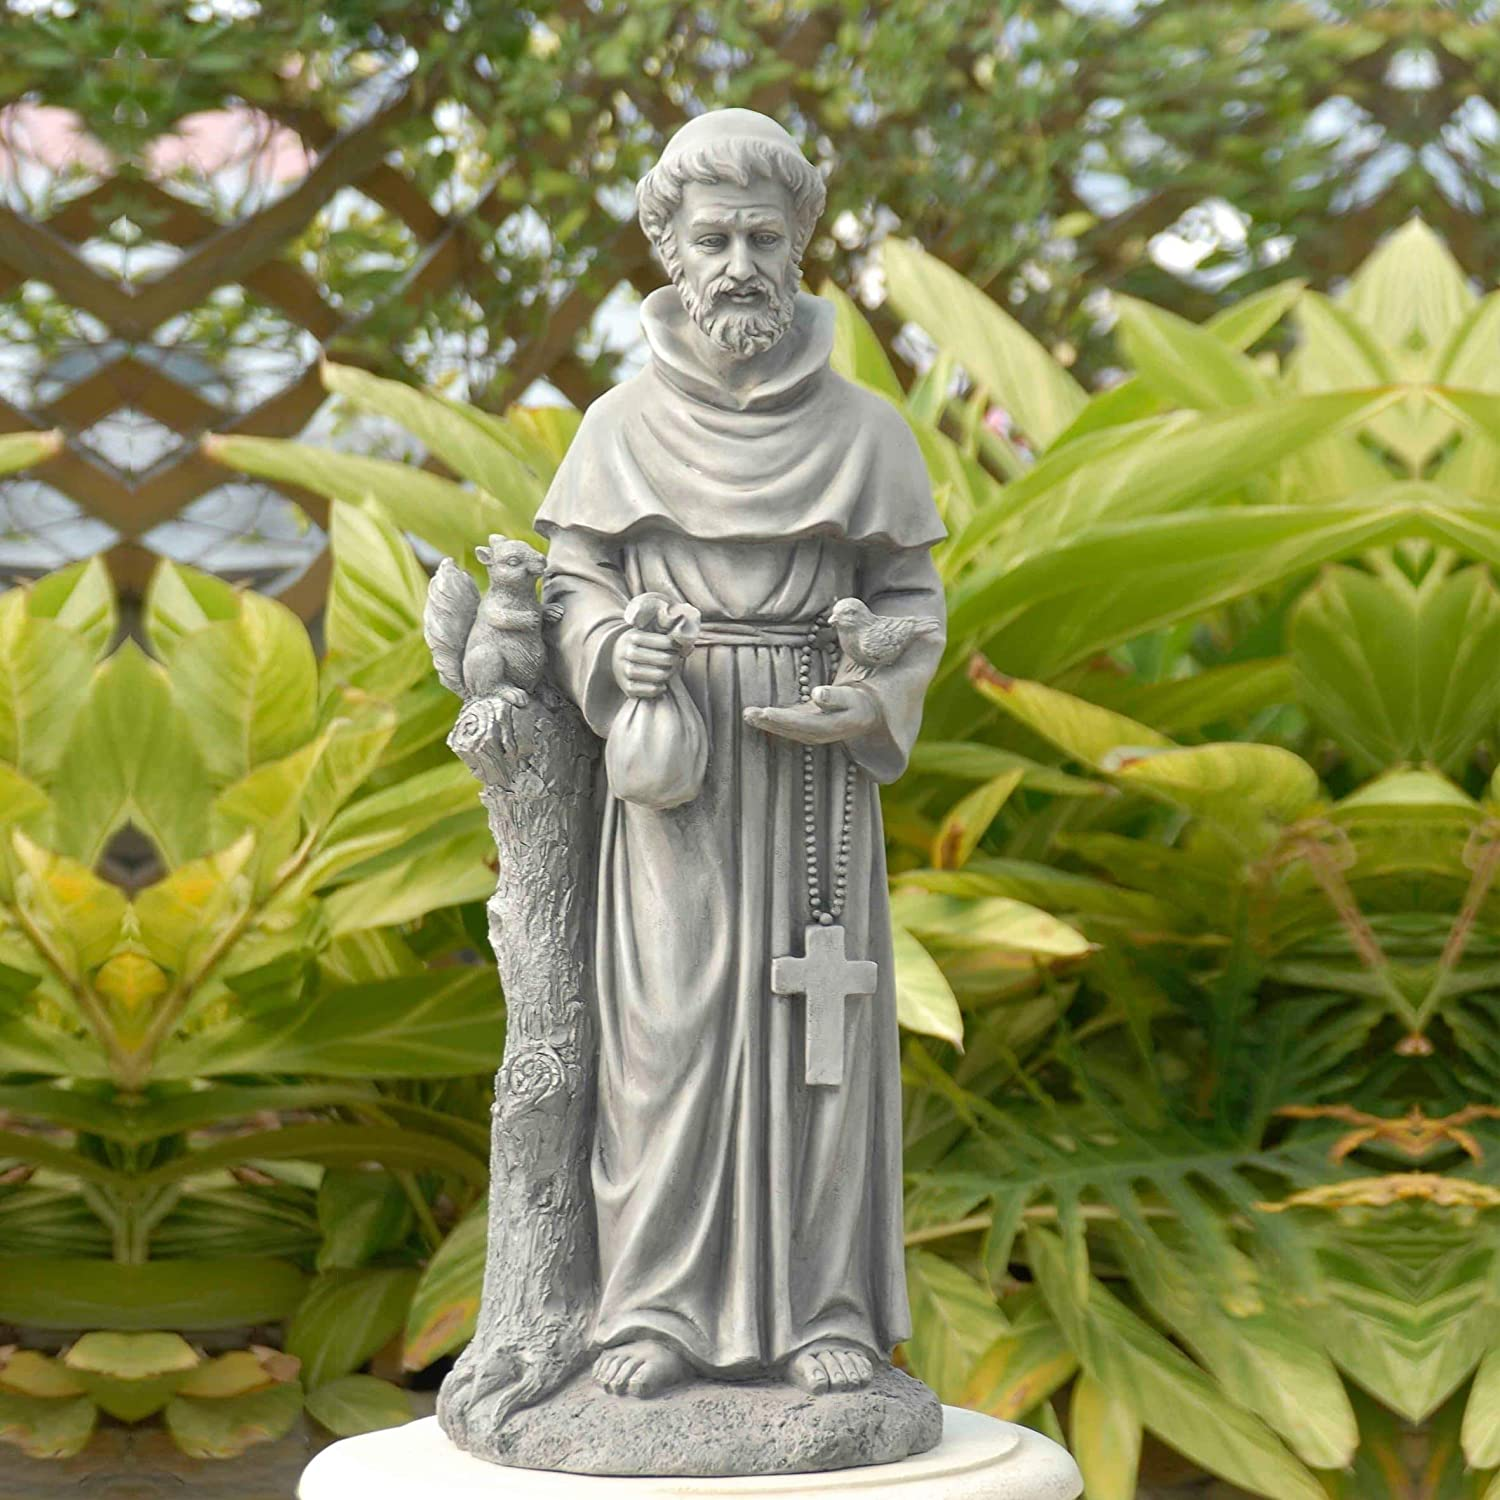 MISC St Francis Garden Statue 31 Inch, Saint Francis Statue for Outdoor All Seasons Patio Sculpture Magnesium Oxide Stone Finish Grey Color